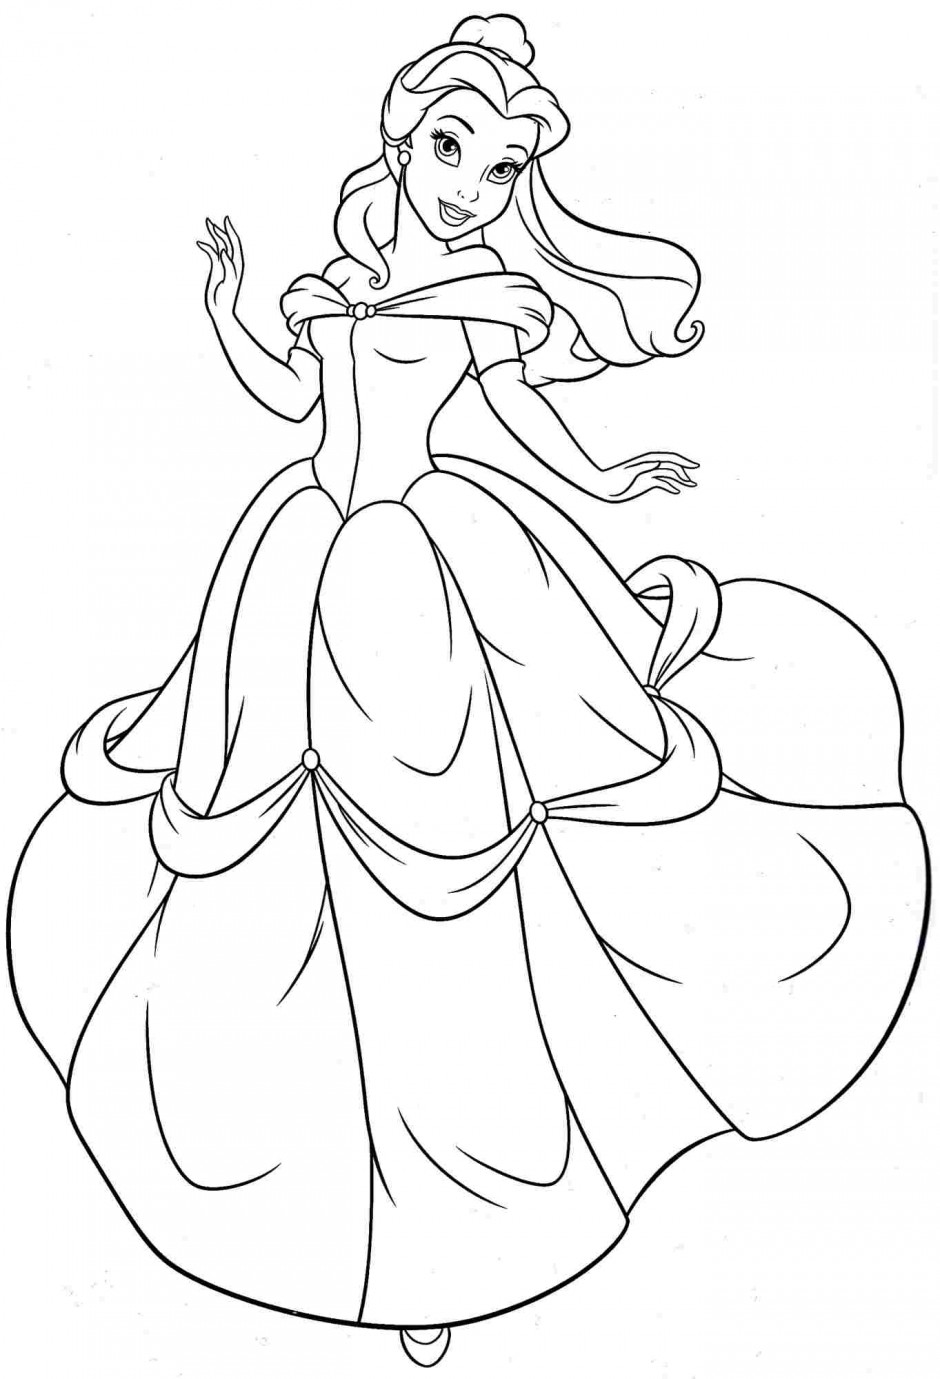 coloring pictures disney princesses free printable belle coloring pages for kids princesses pictures disney coloring